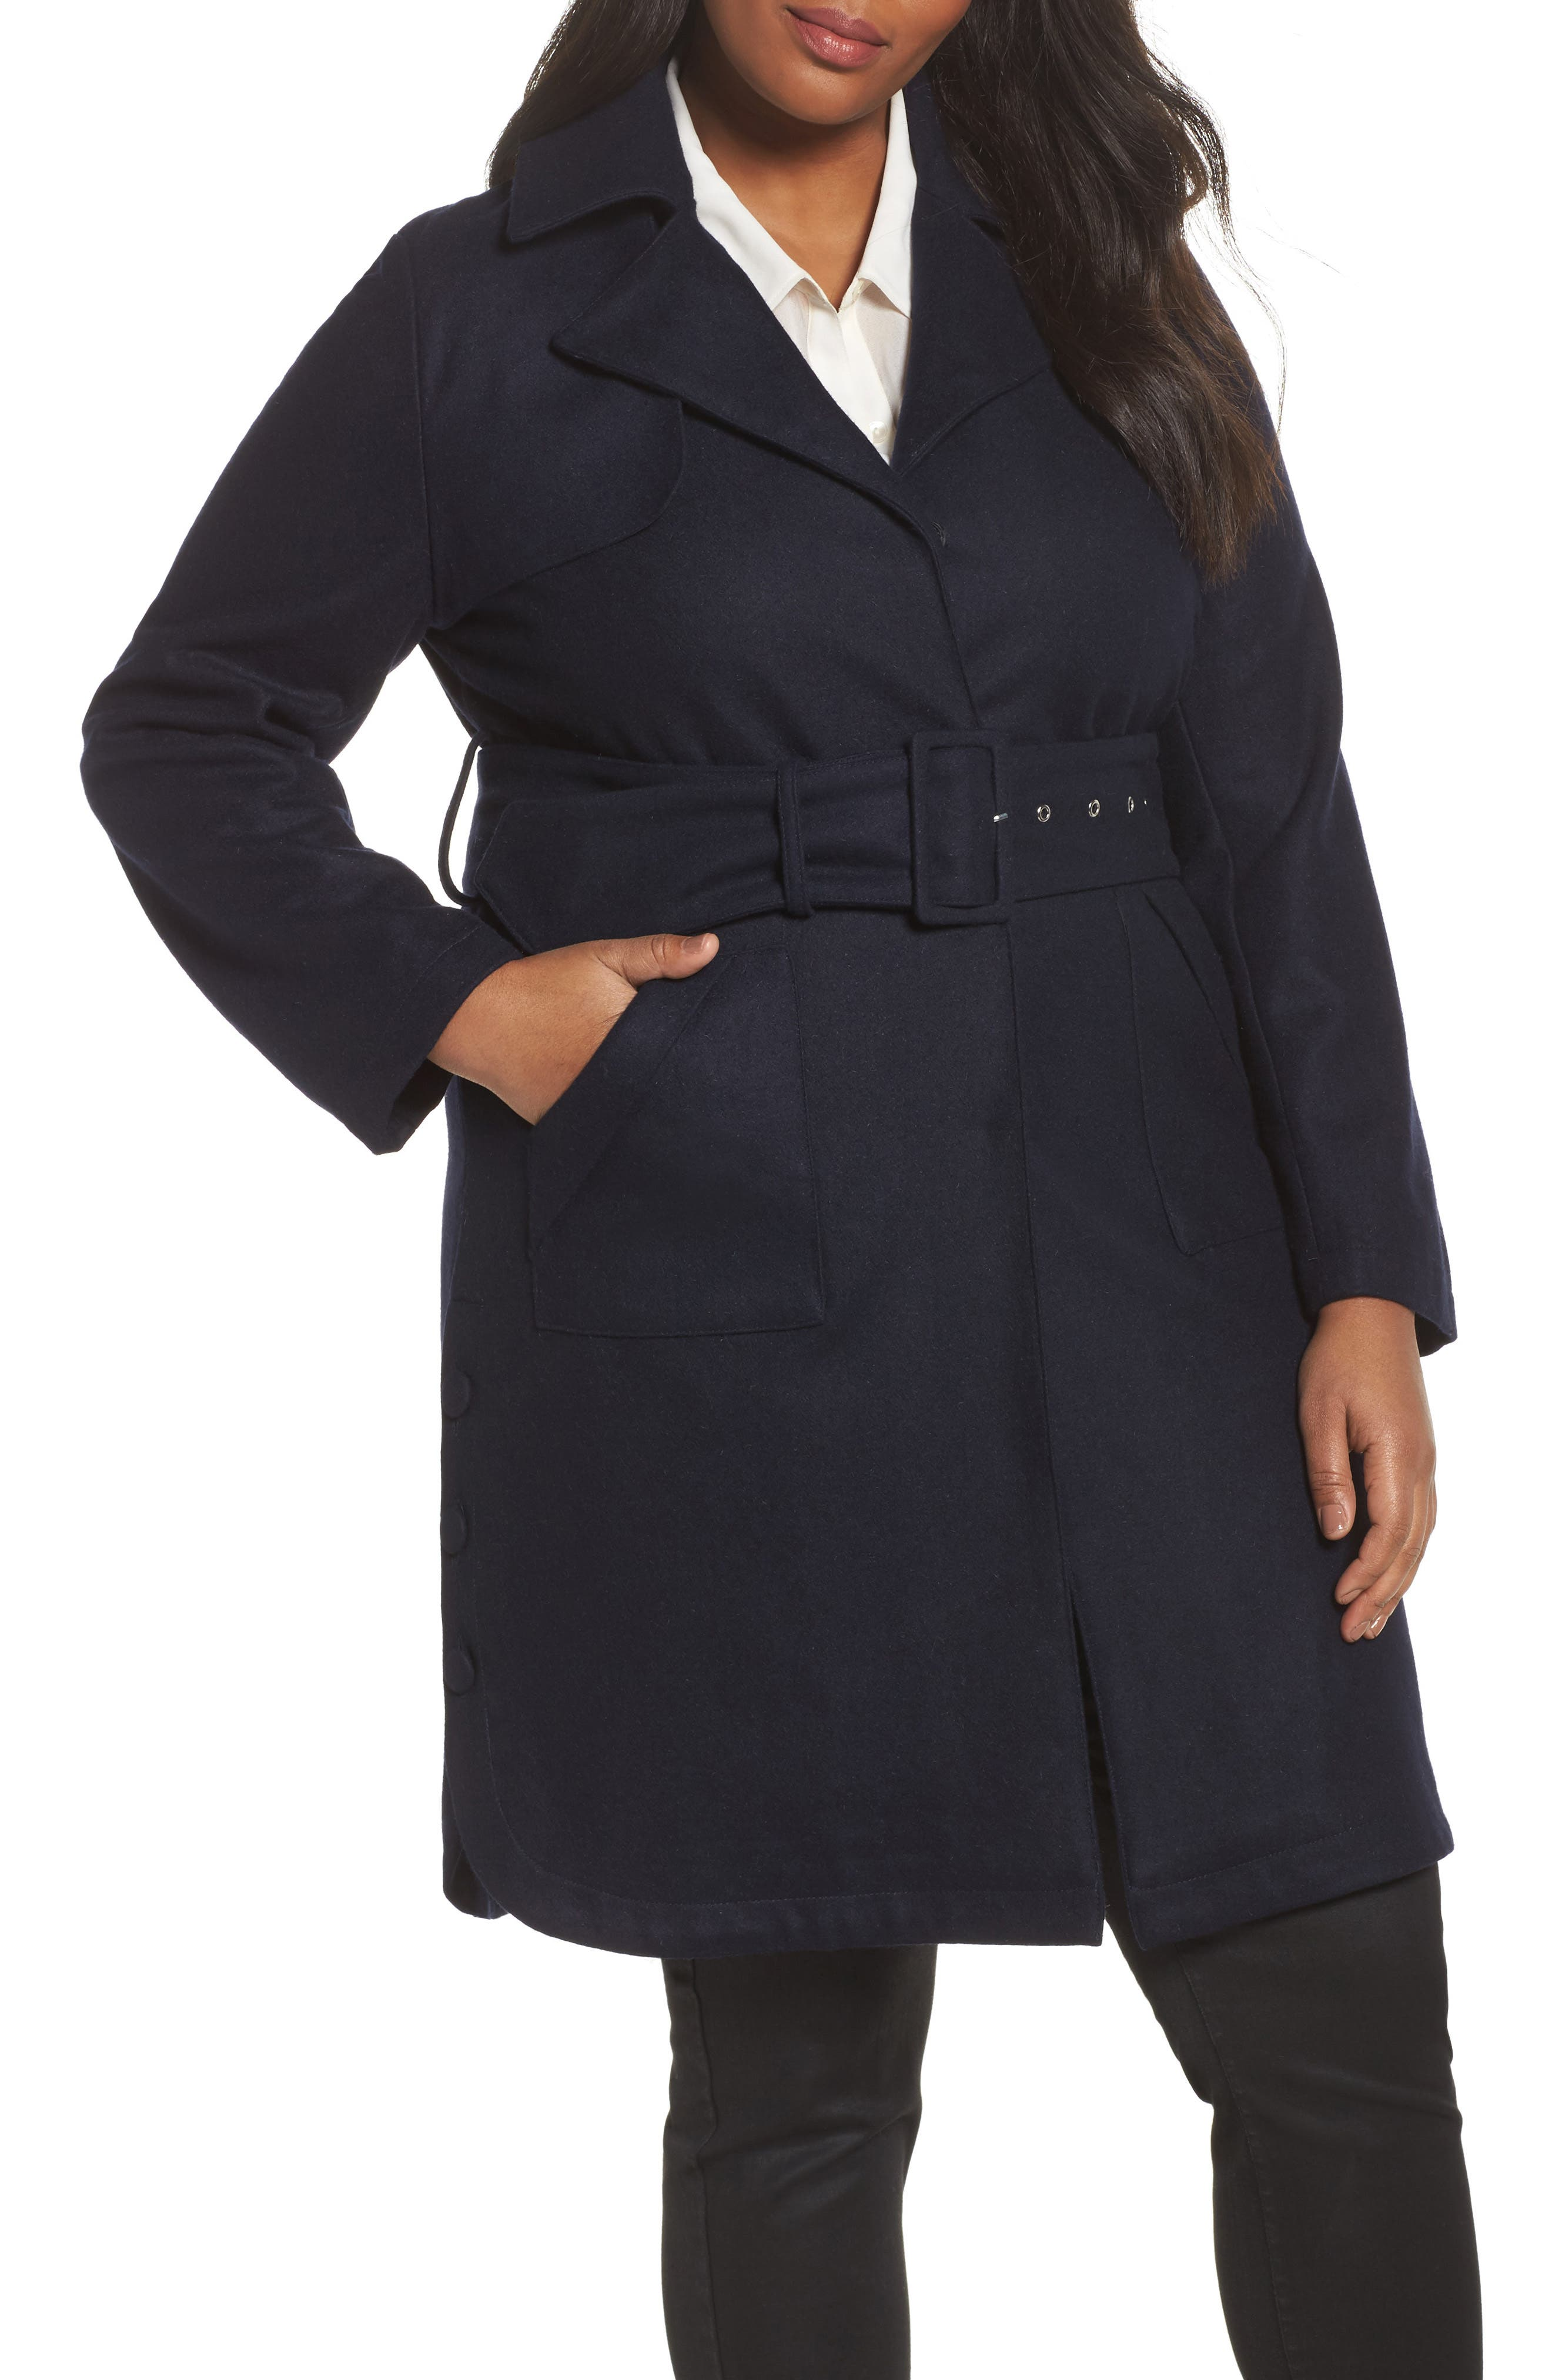 Alternate Image 1 Selected - Lost Ink Wool Blend Trench Coat (Plus Size)